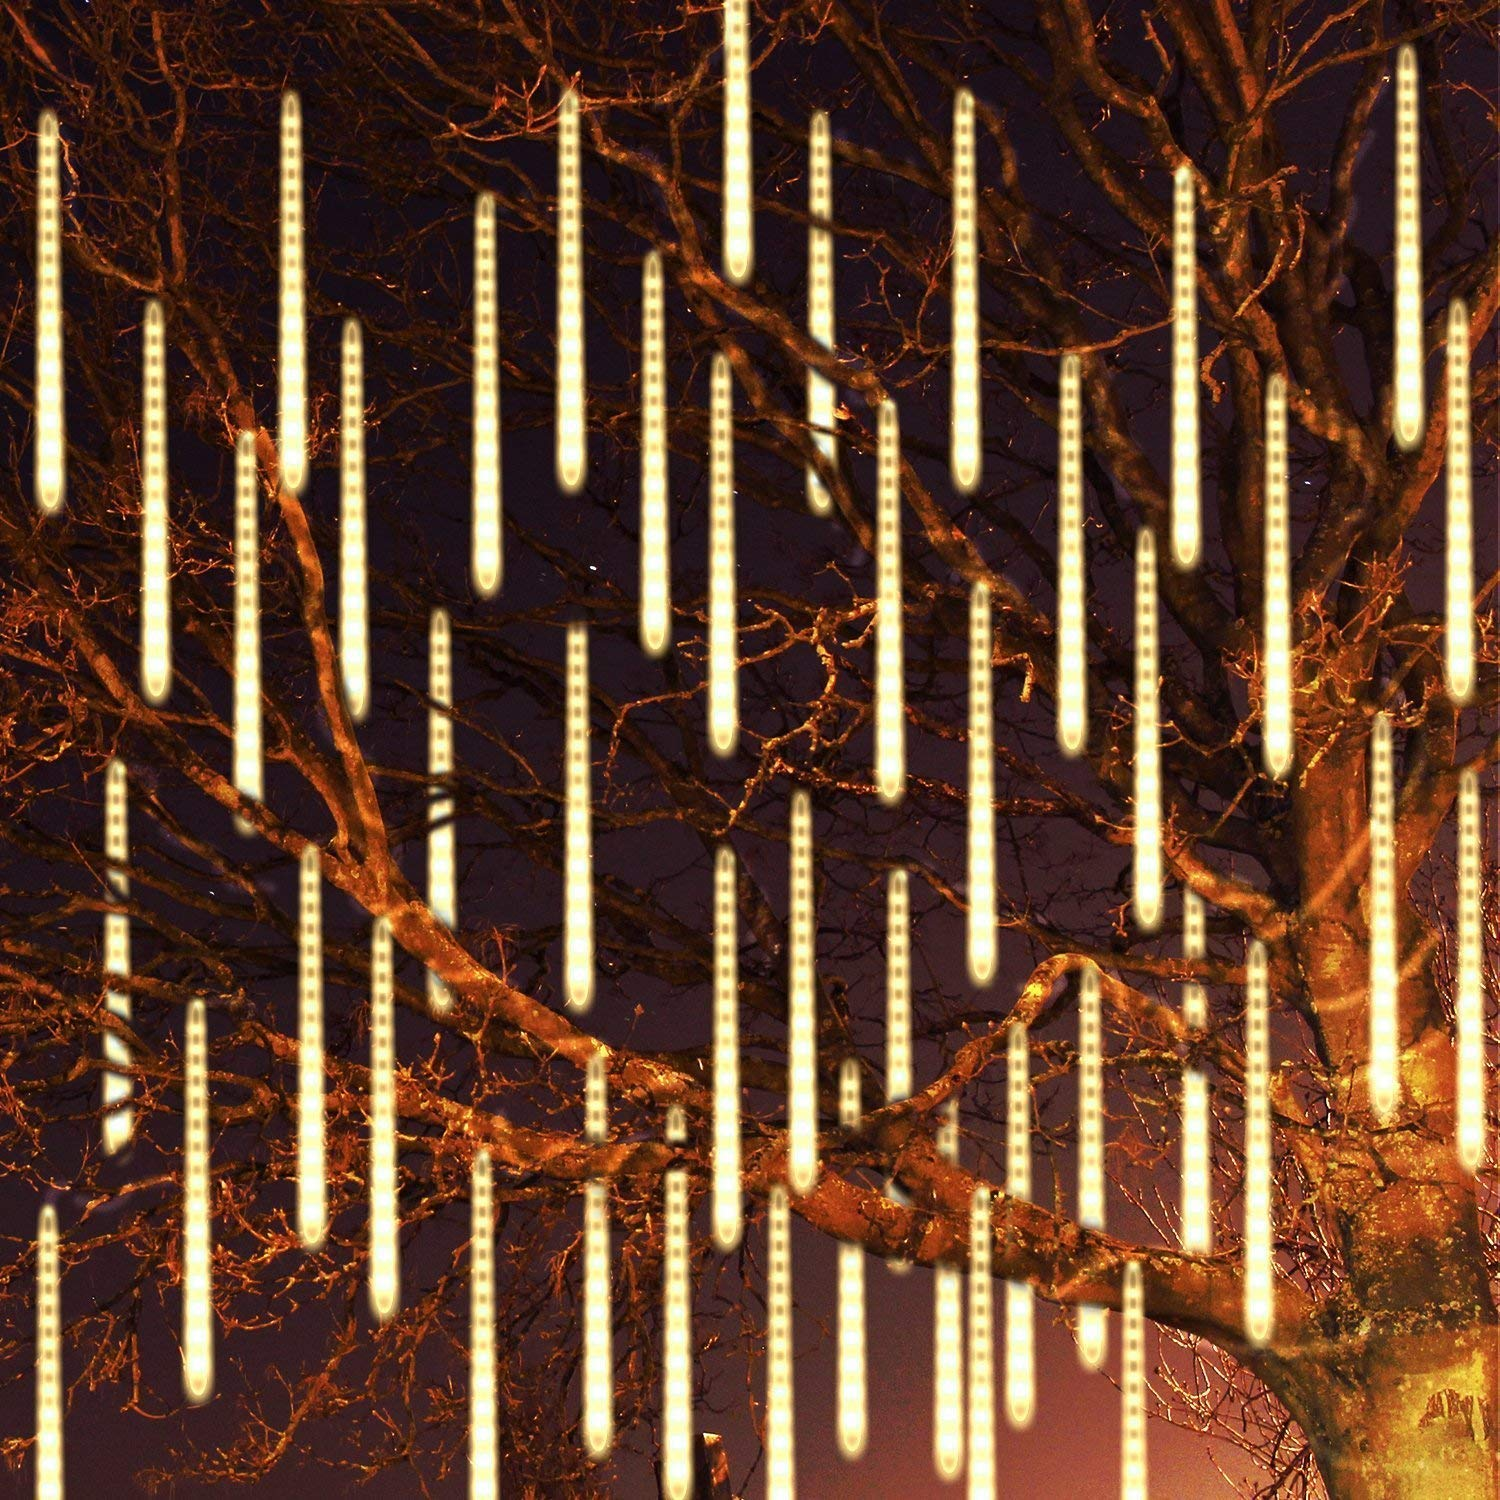 Meedasy 22.96ft/7m 540LED Meteor Shower Rain Lights, 50cm 10 Tubes Waterproof Cascading Icicle Raindrop Snow Falling Lights for Garden Outdoor Patio Xmas Holiday Wedding Party Decoration (Warm White)